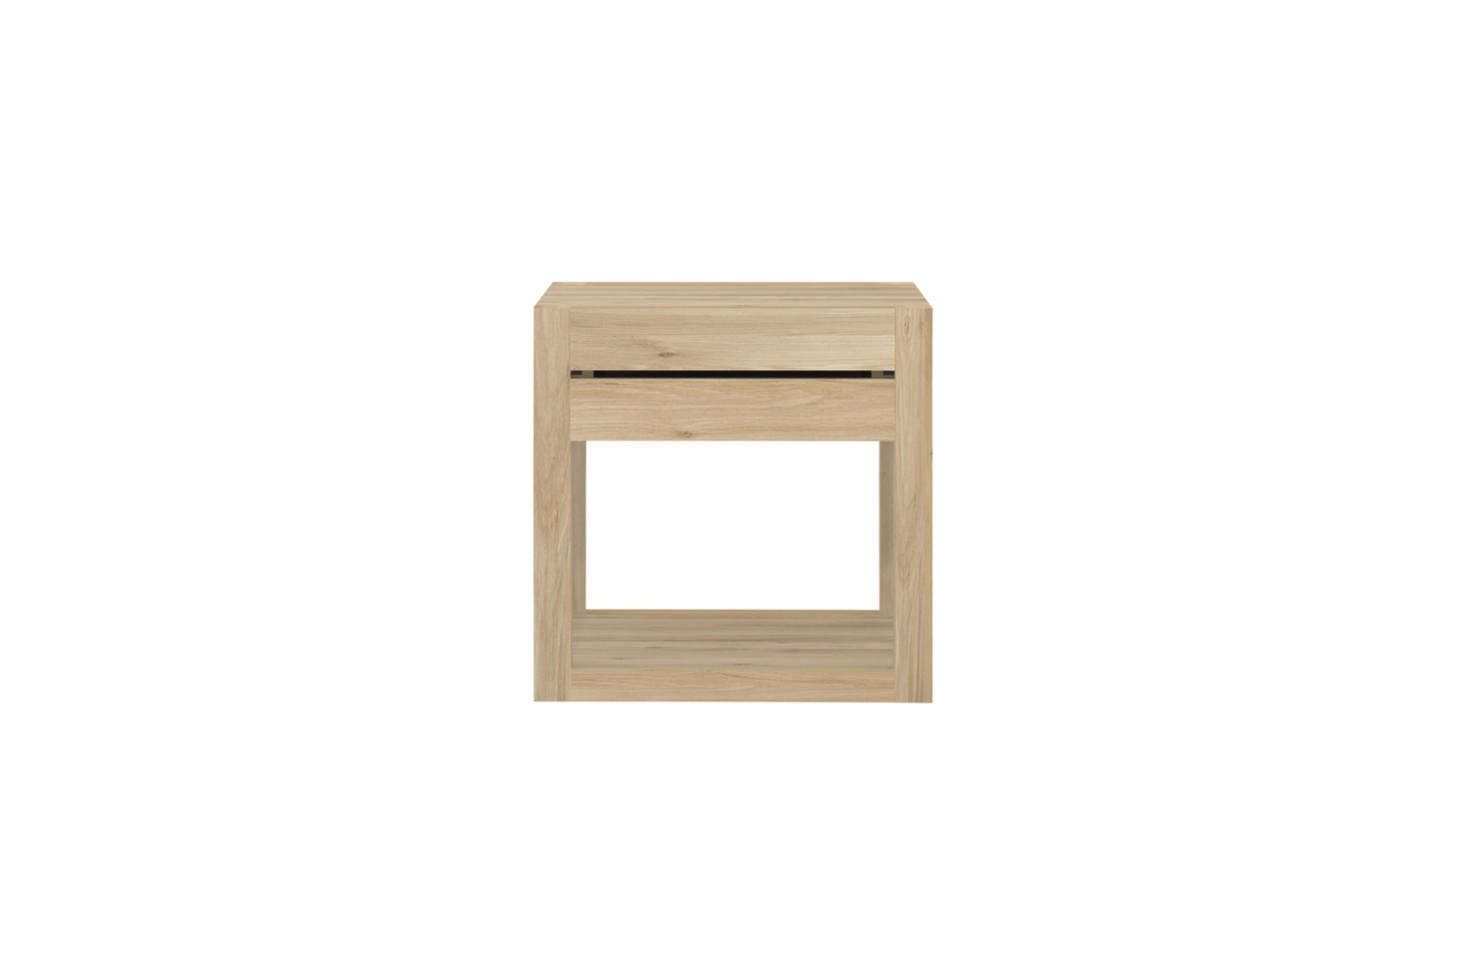 The Oak Azur Nightstand from Ethnicraftis made in Europe from sustainably sourced solid oak that is kiln-dried to ensure hardness. The nightstand has a self-closing drawer on an easy glide, under-mounted track; $4 from Lekker Home.